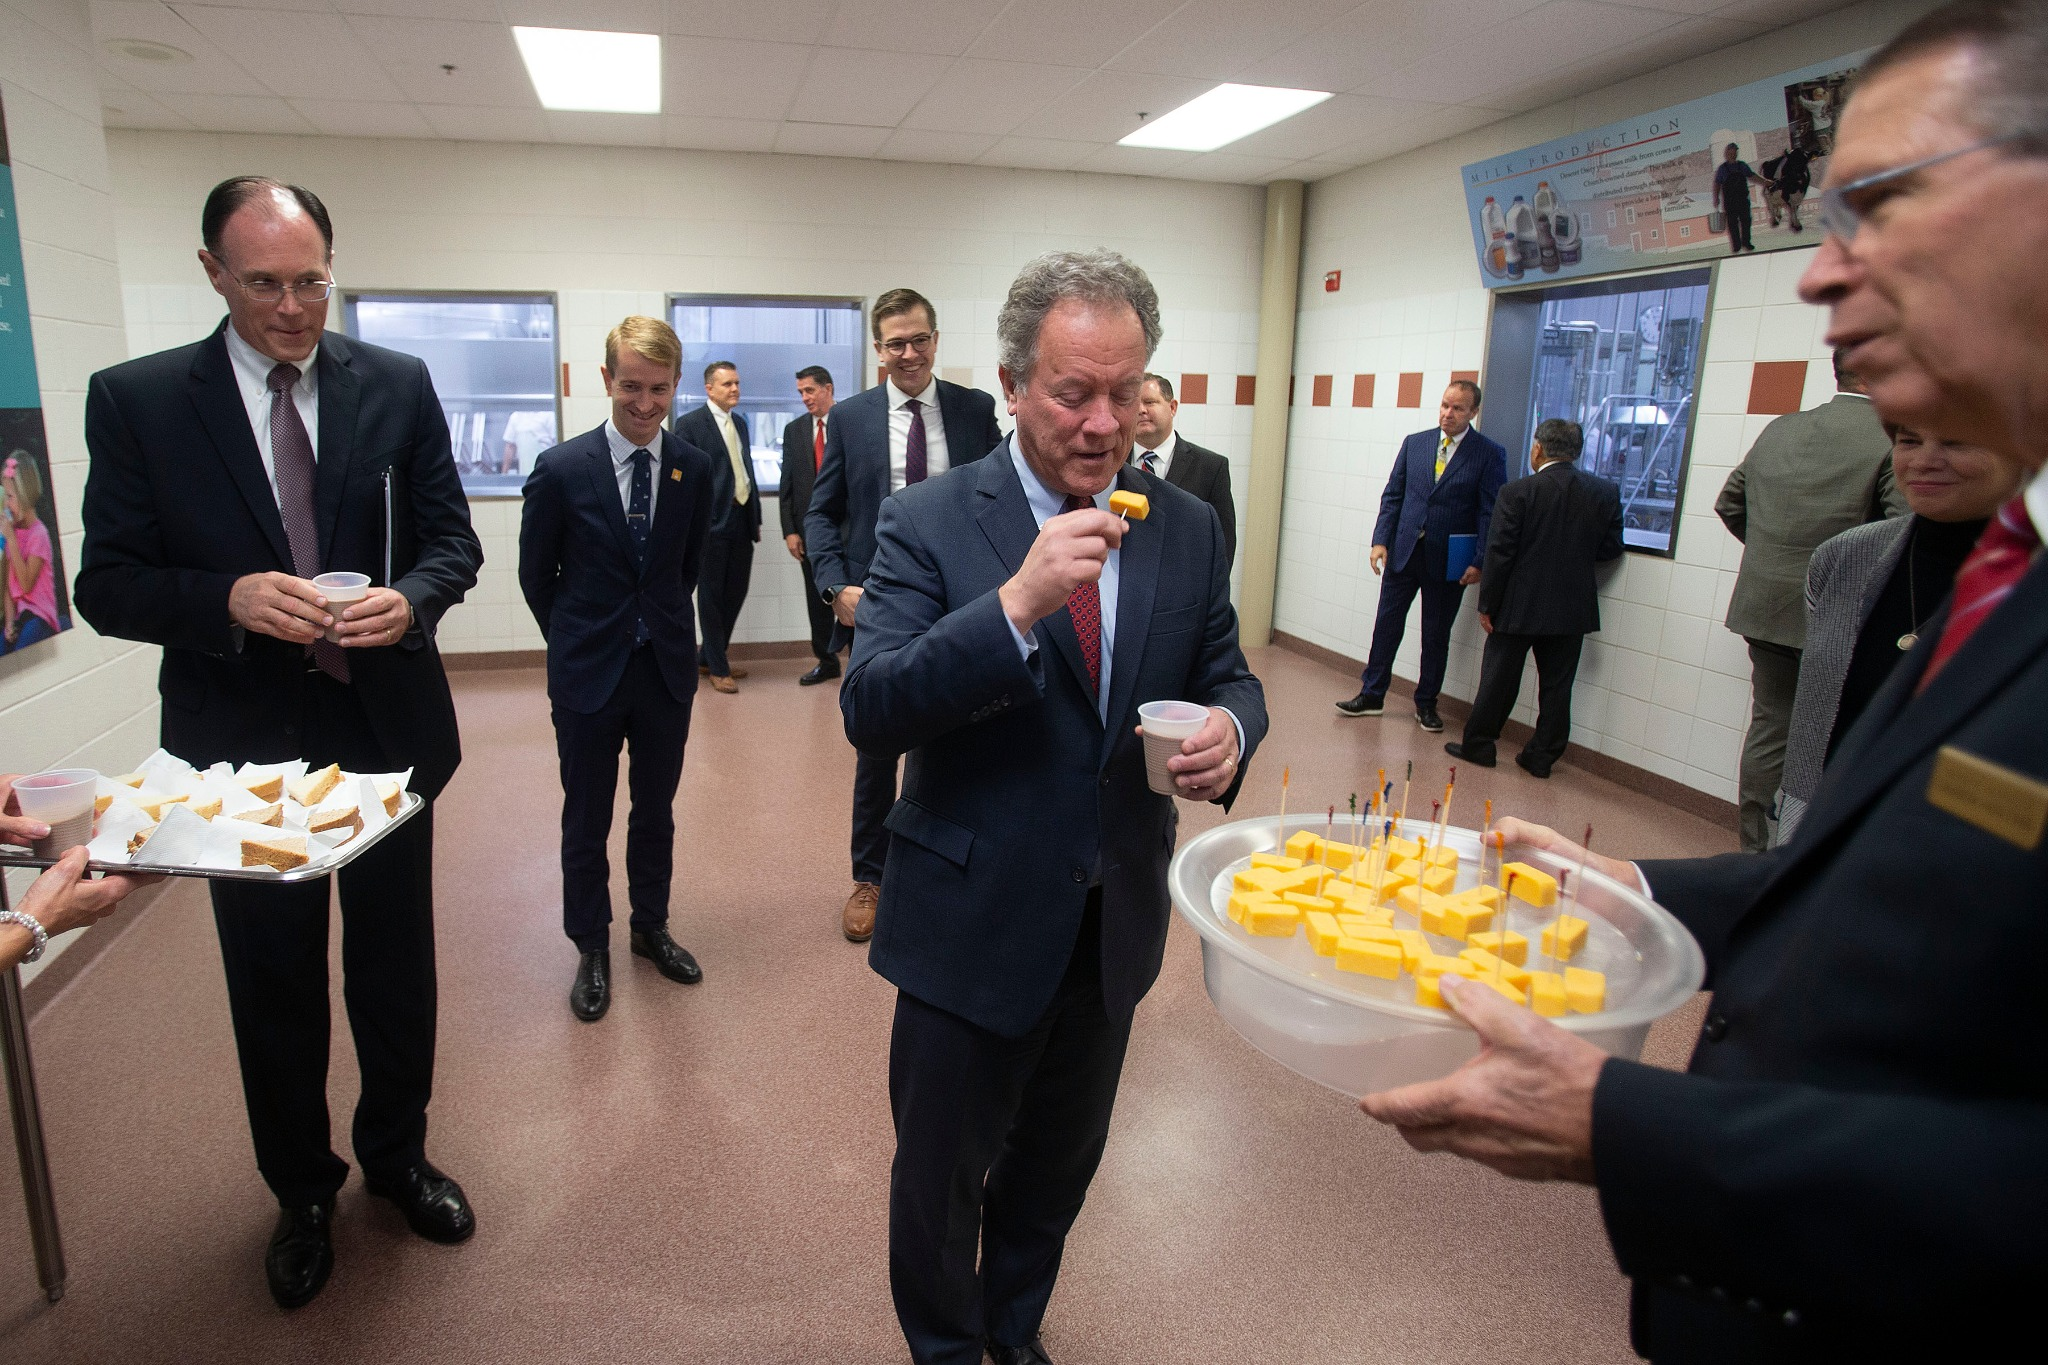 David Beasley, executive director of the United Nations World Food Program, and samples some of the products Welfare Square produces — including cheese, chocolate milk, break and jam — during a tour with Bishop W. Christopher Waddell of the Presiding Bishopric on Monday, Sept. 30, 2019.